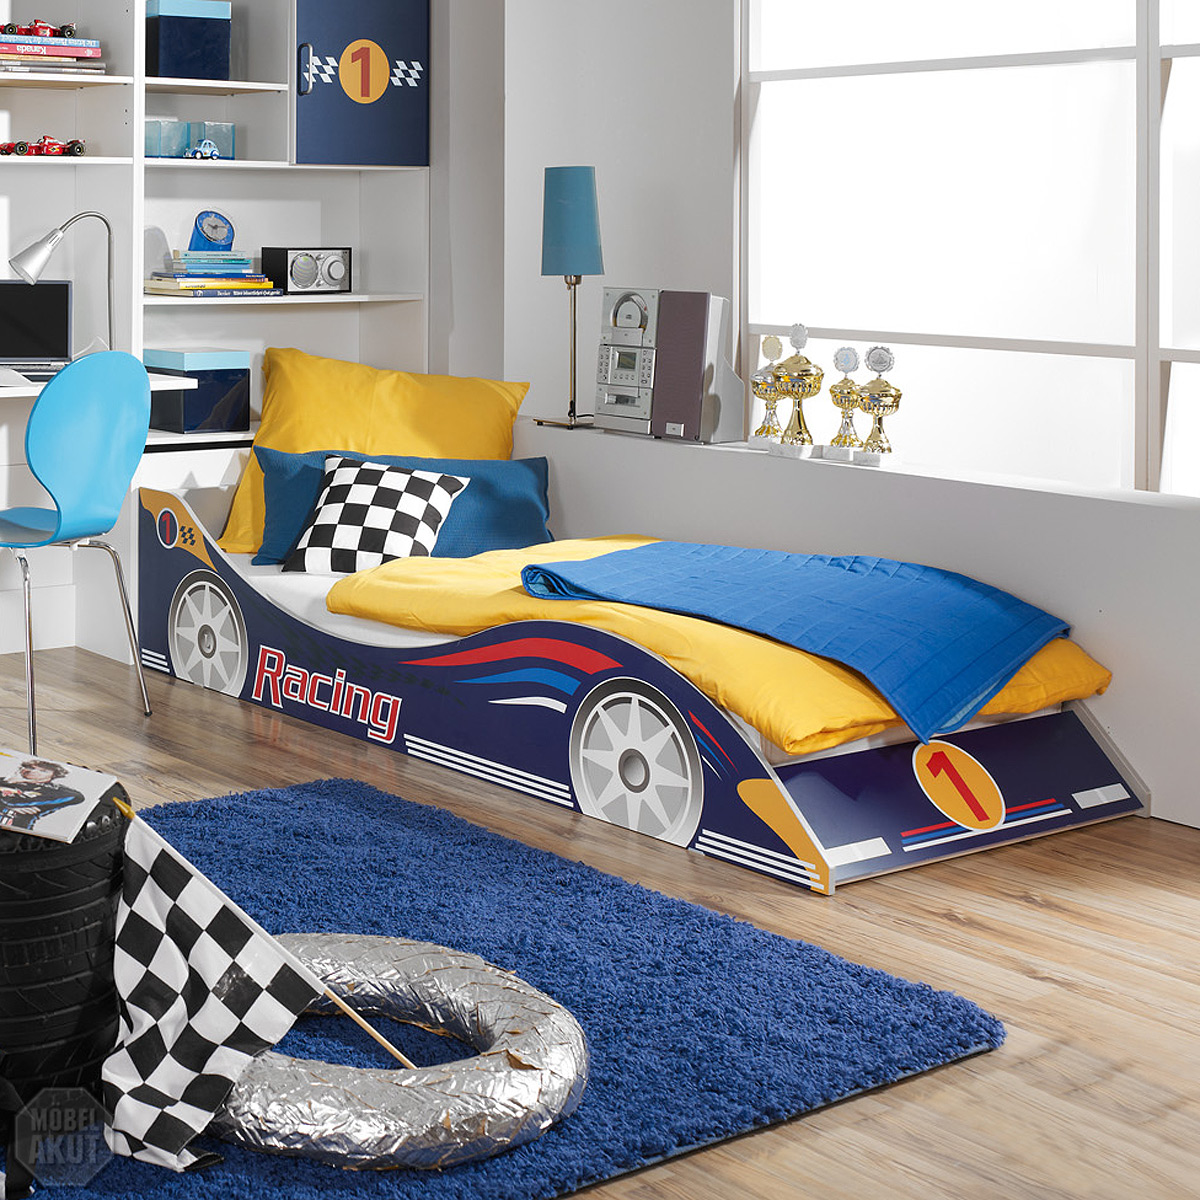 kinderbett racing autobett bett f r kinderzimmer in blau. Black Bedroom Furniture Sets. Home Design Ideas